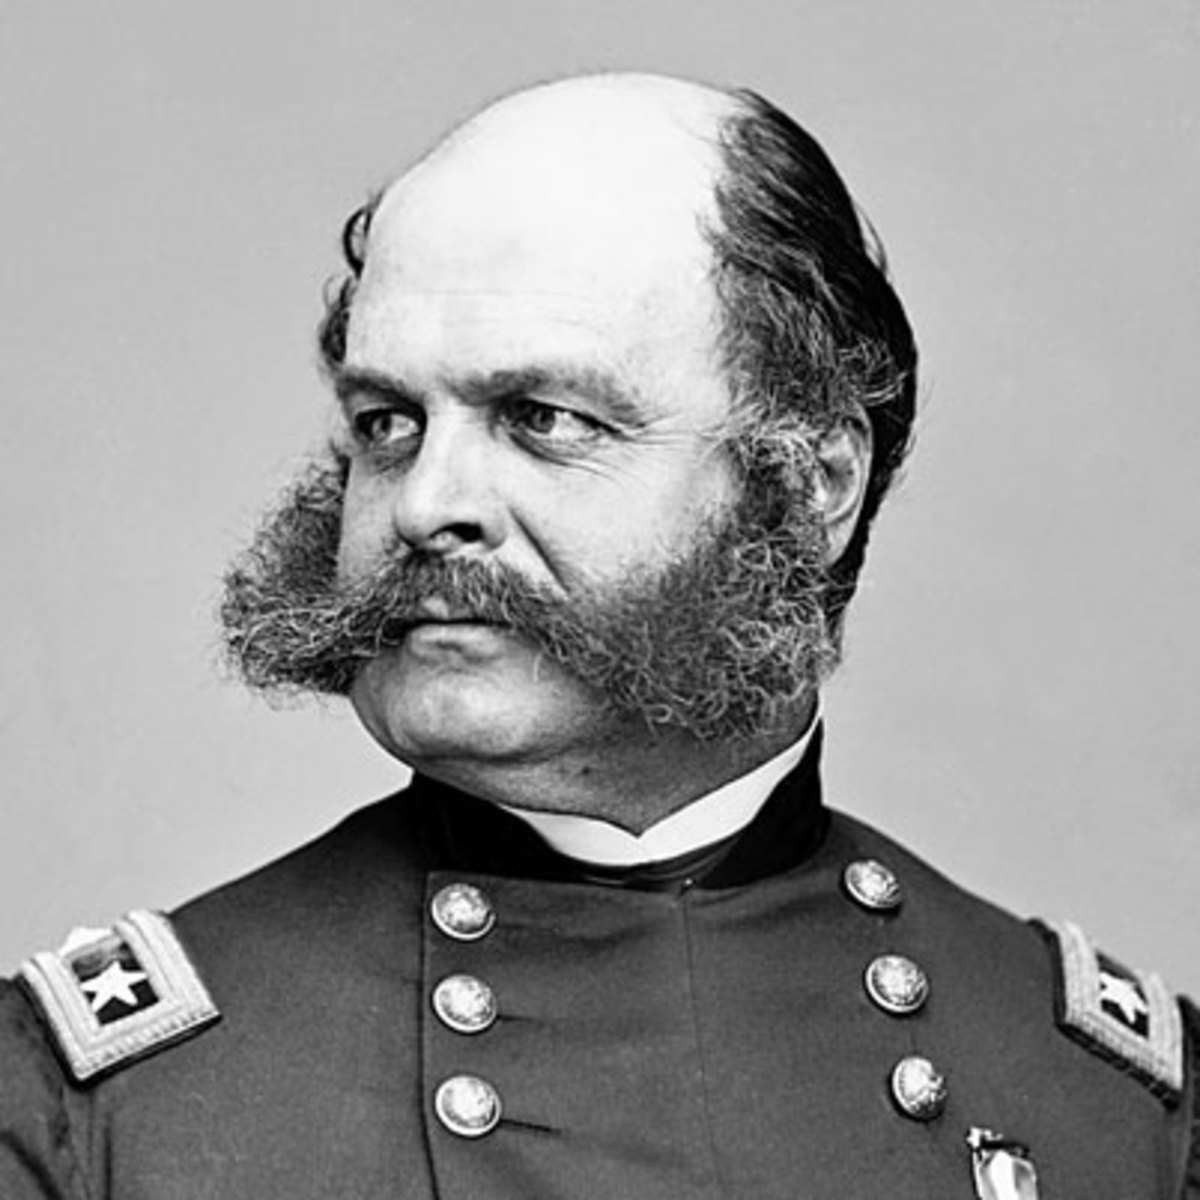 ambrose-burnside-9232219-1-402.jpg